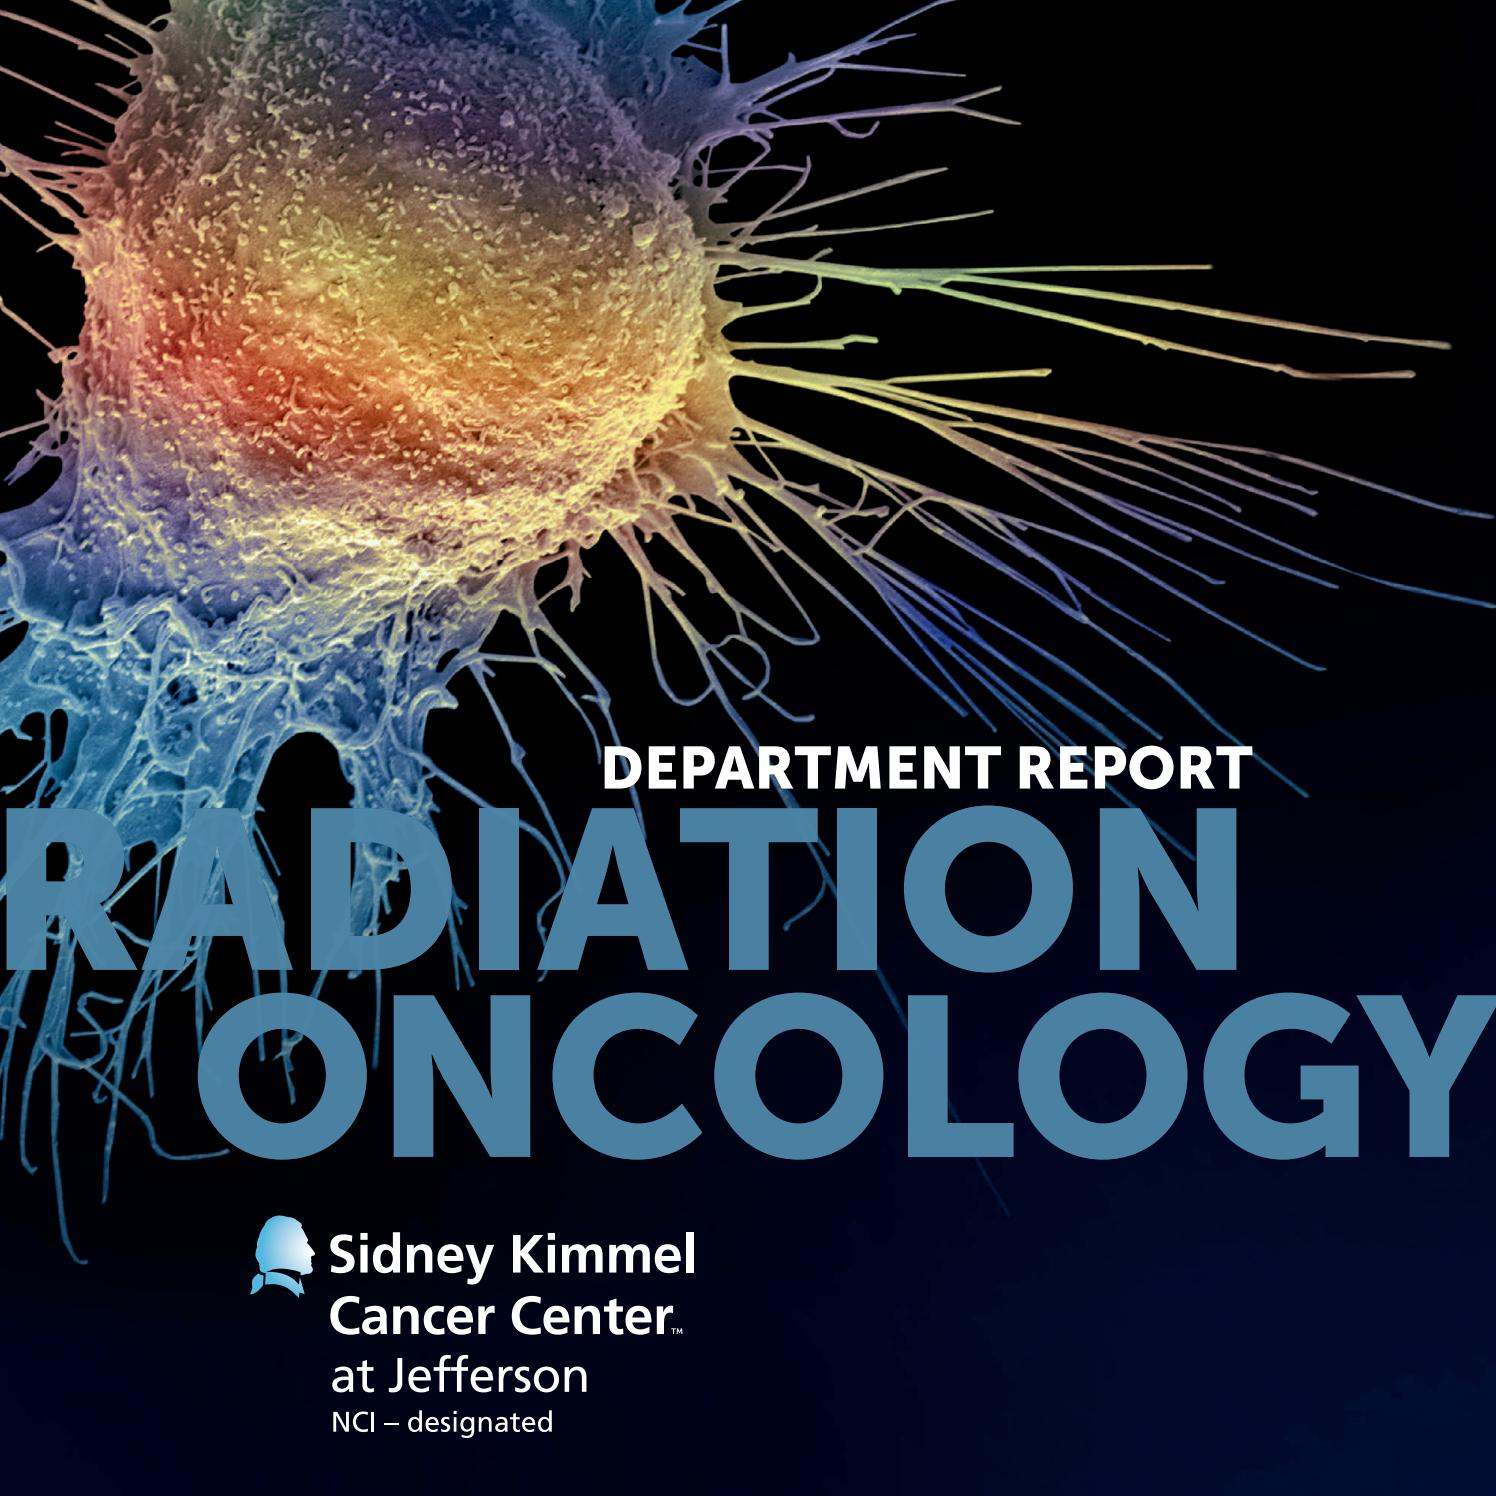 Radiation Oncology Department Report by Sidney Kimmel Cancer